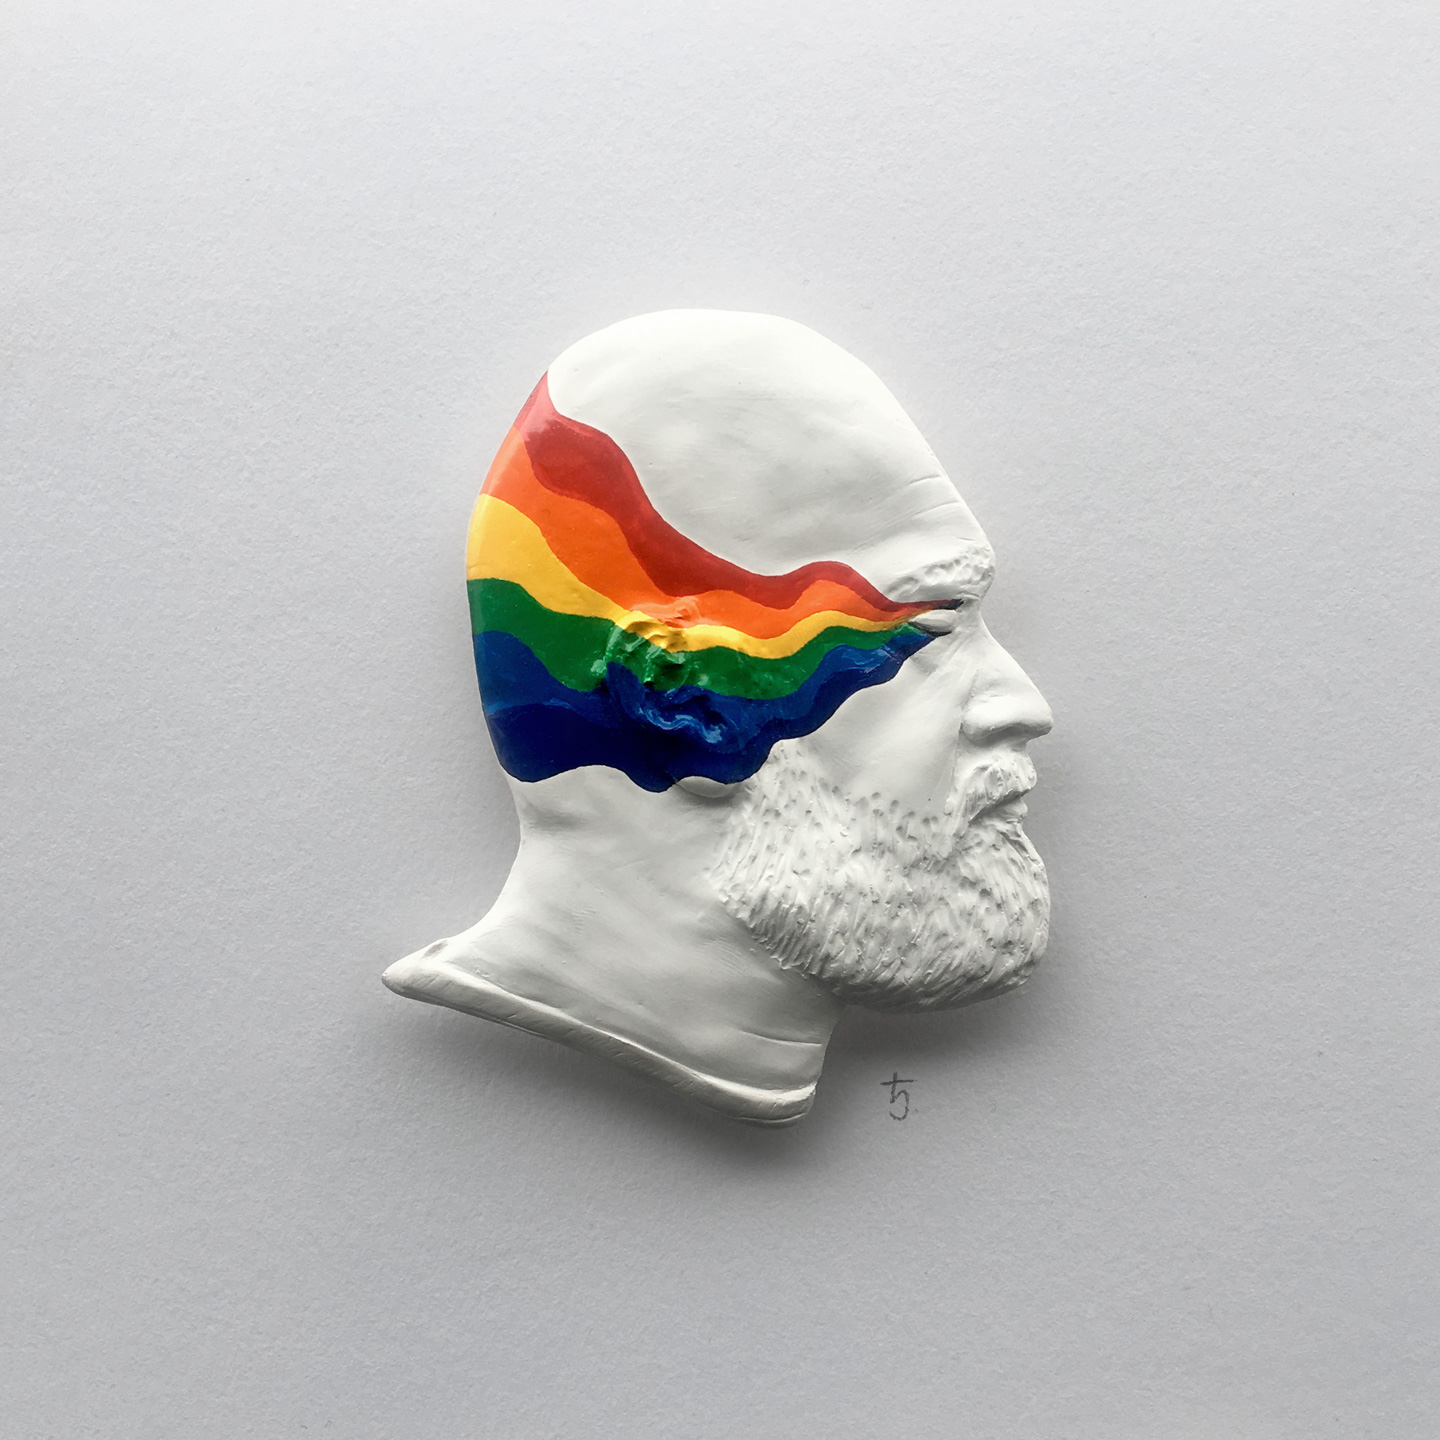 art_andre_levy_zhion_recovered_self_portrait_beard_rainbow_pride_lgbtq_queer_gay.jpg